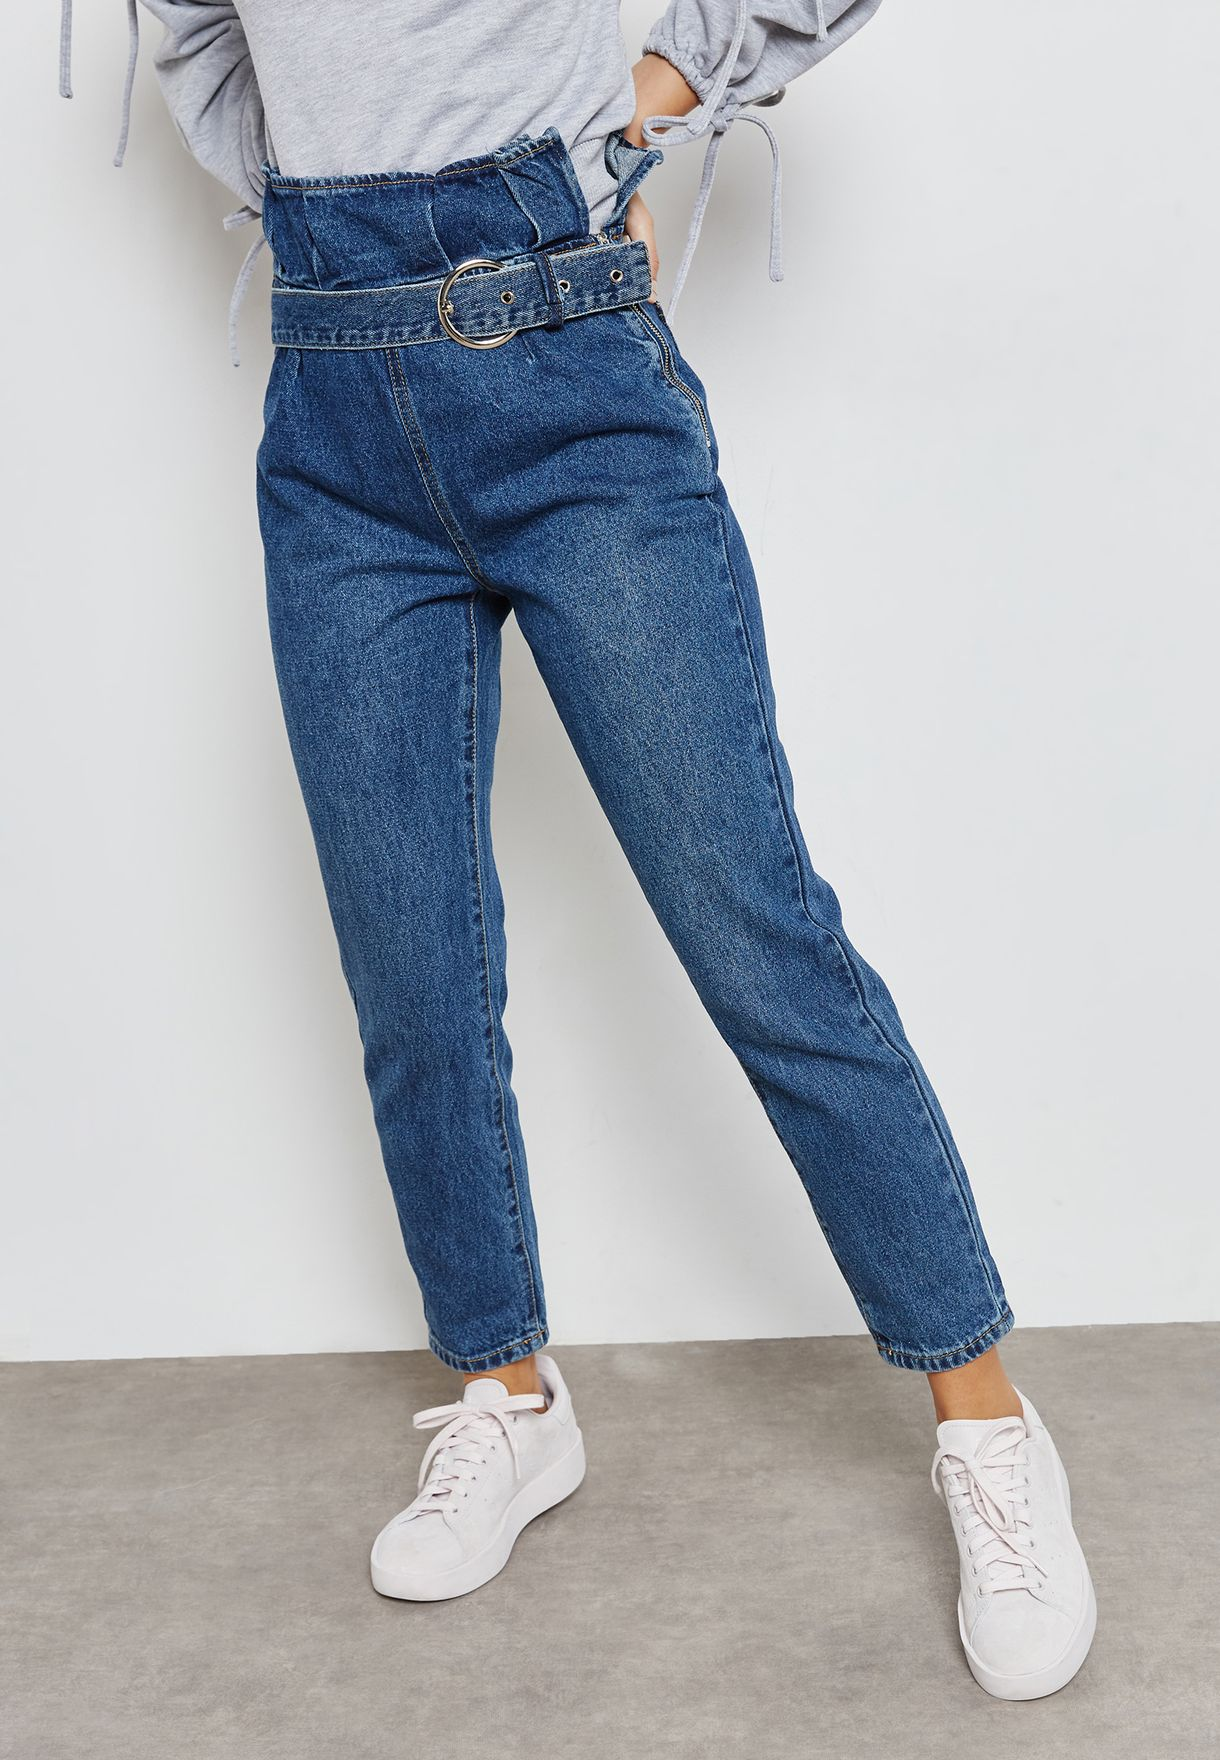 2ccf7461347 Shop Lost Ink Petite blue Paperbag Mom Jeans 1005114040130025 for ...